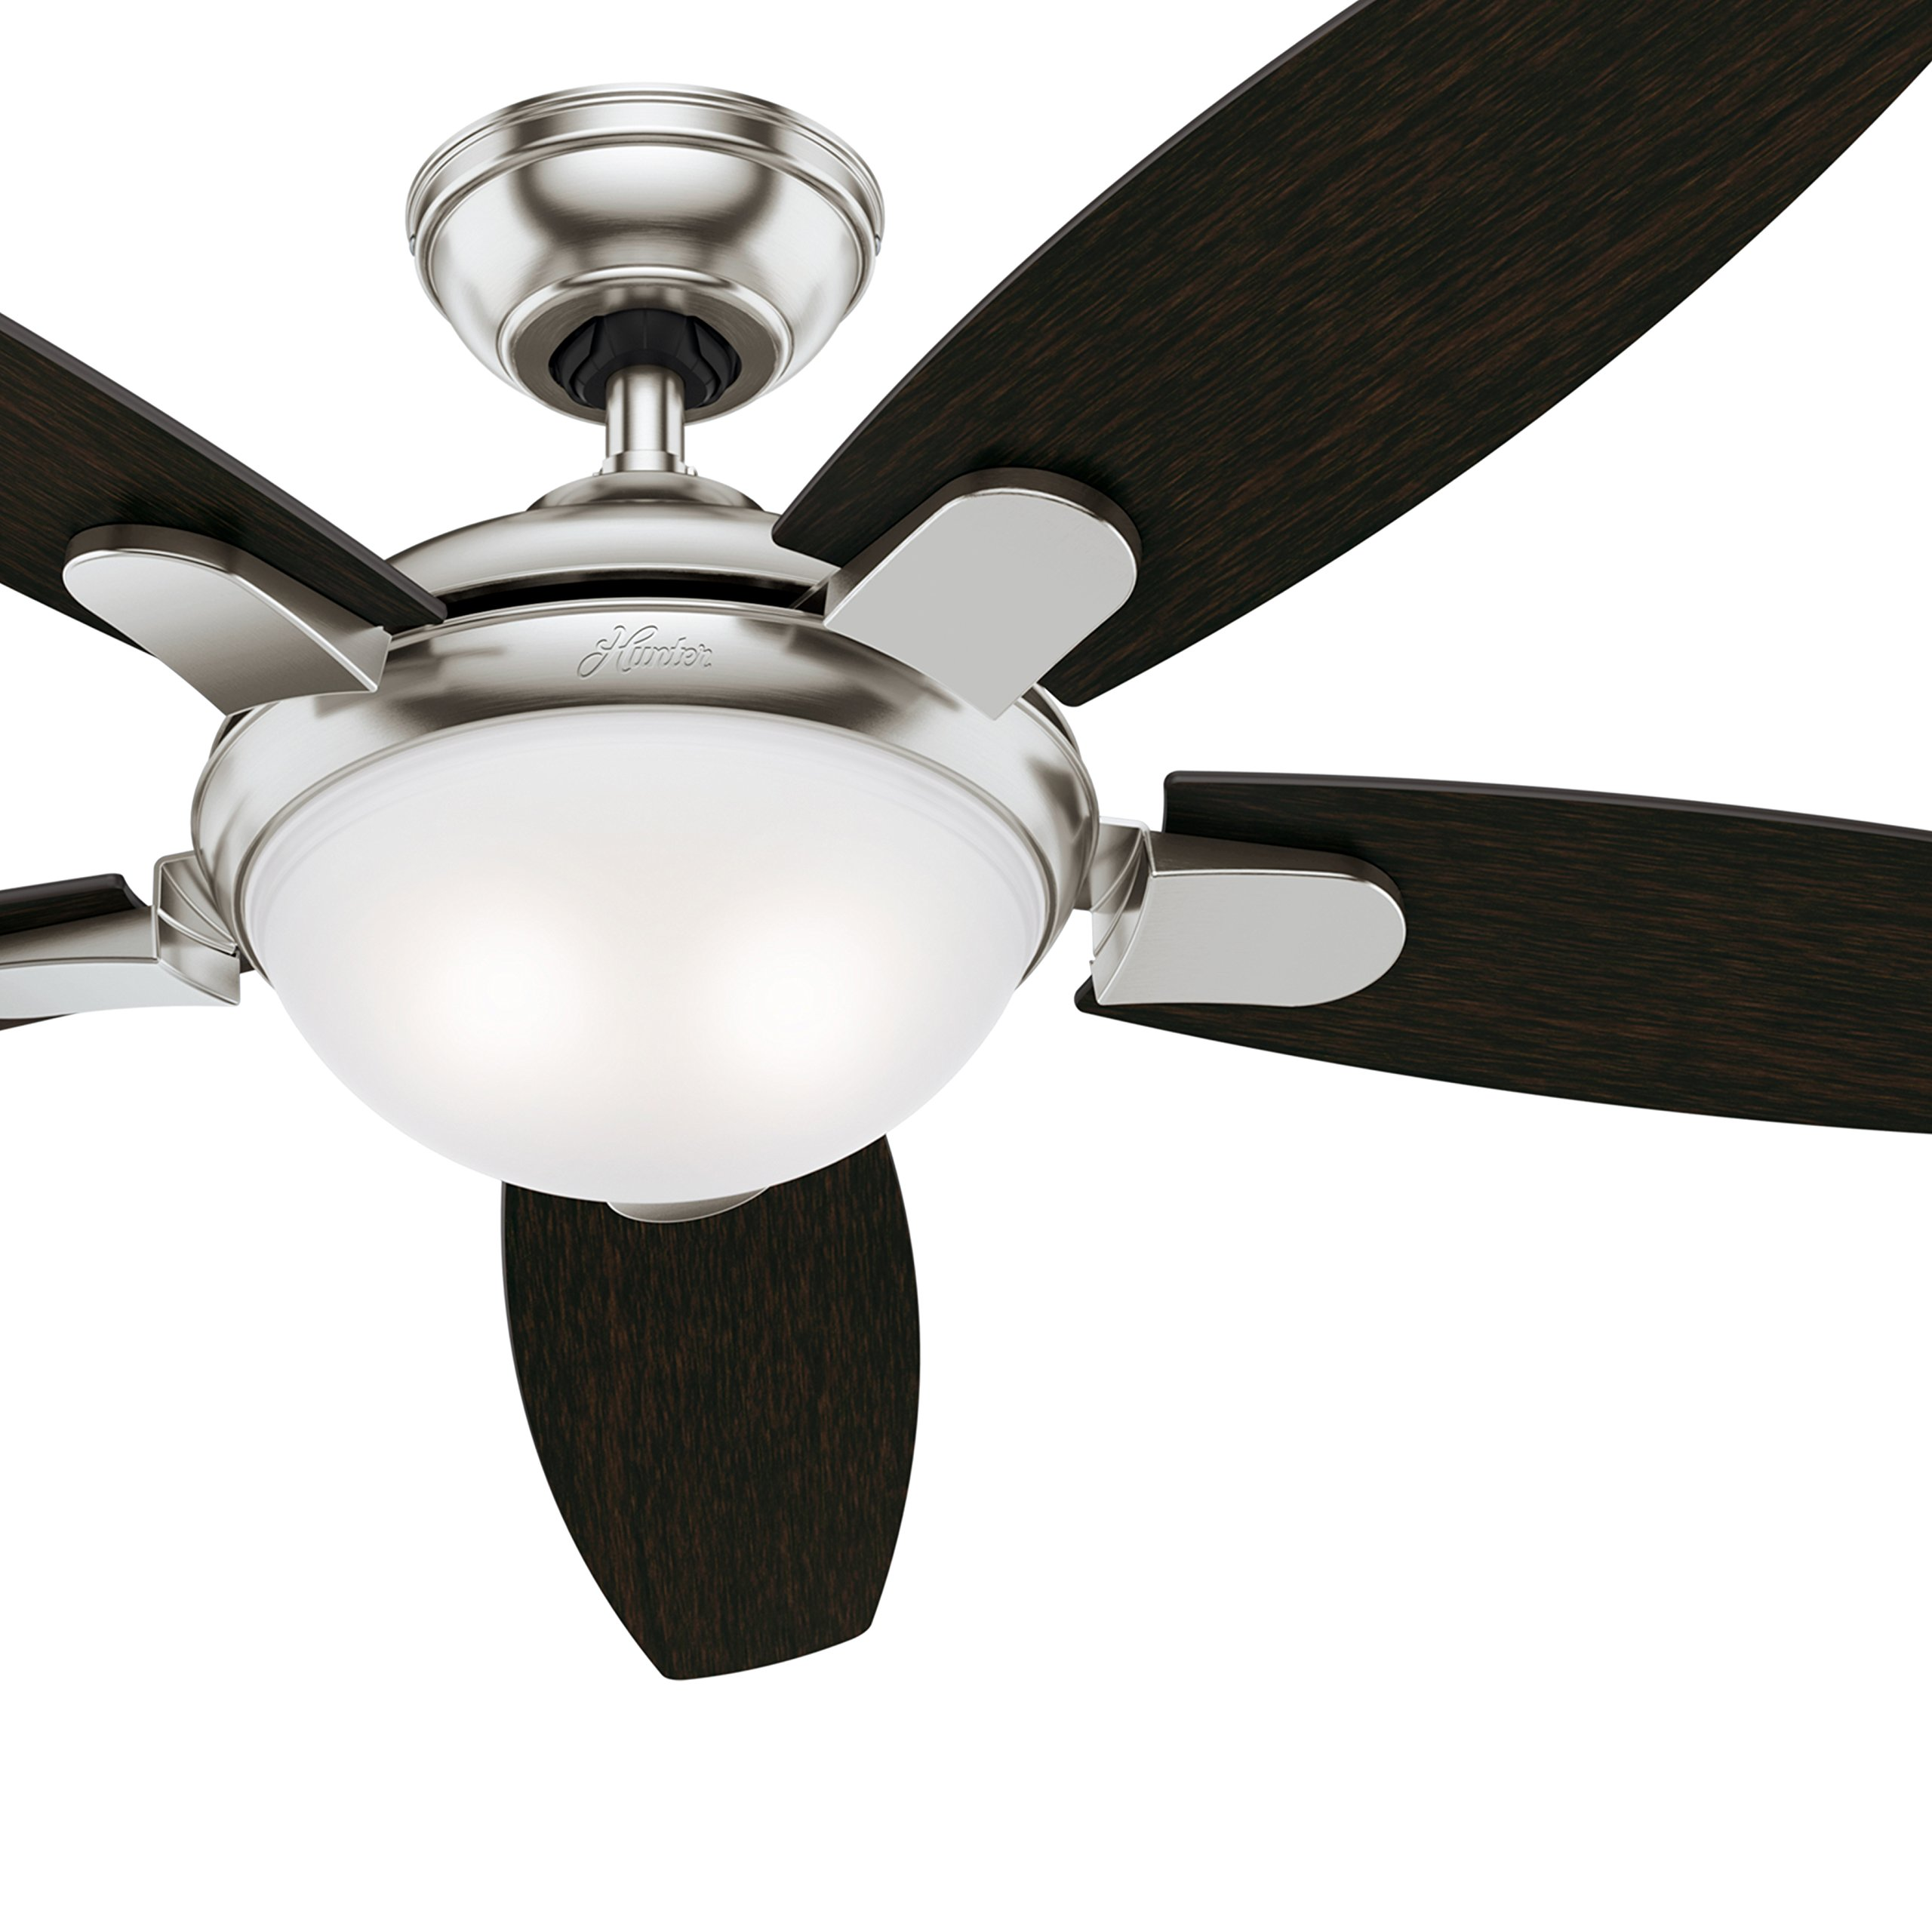 Hunter 54 in. Contemporary Ceiling Fan in Brushed Nickel with LED Light and Remote Control (Certified Refurbished) by Hunter Fan Company